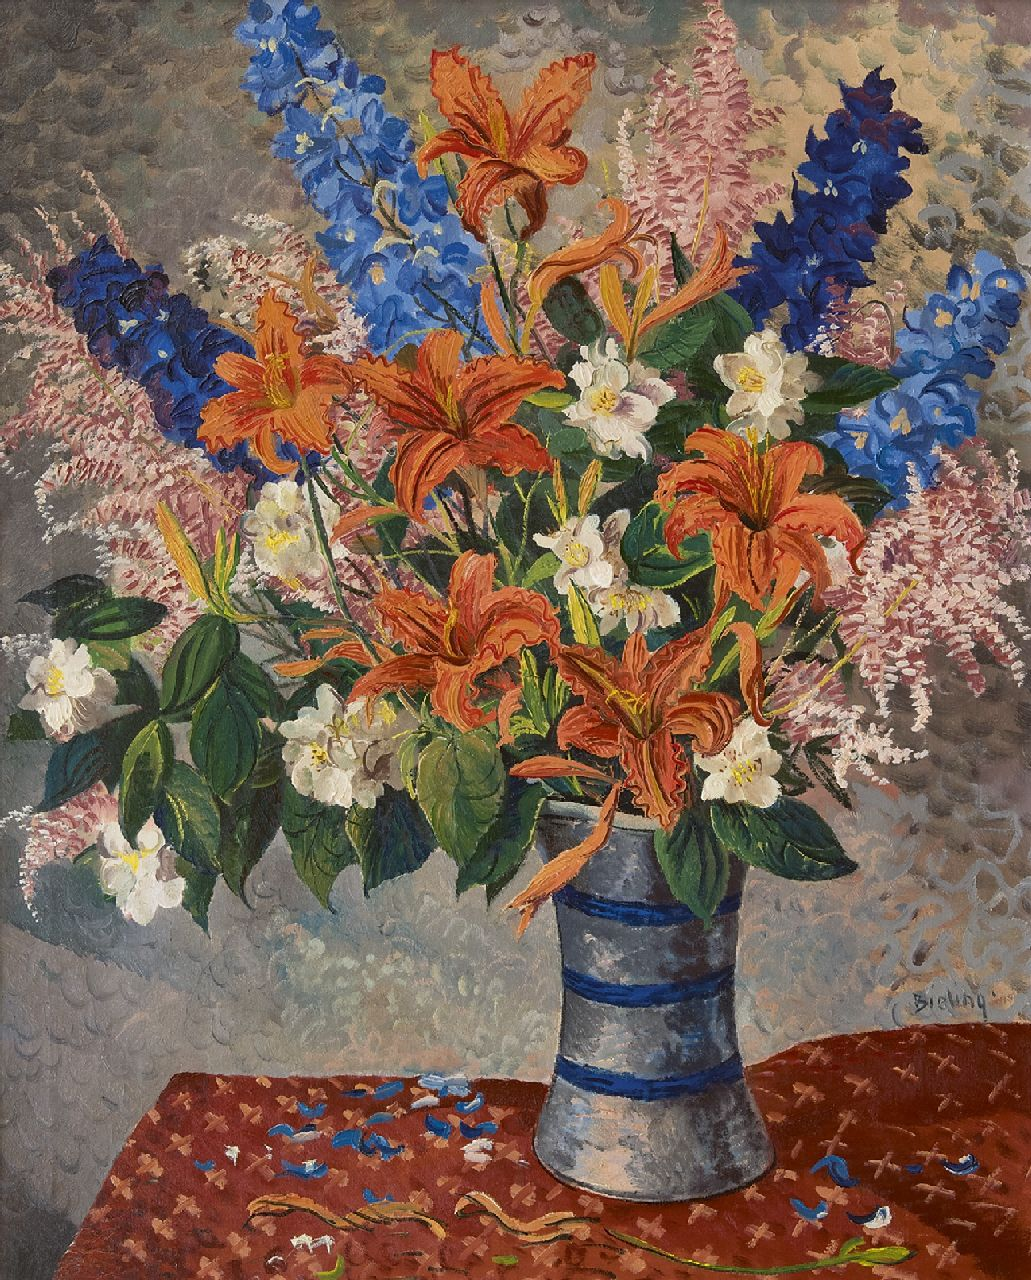 Bieling H.F.  | Hermann Friederich 'Herman' Bieling | Paintings offered for sale | Flower still life, oil on canvas 69.2 x 57.4 cm, signed c.r.